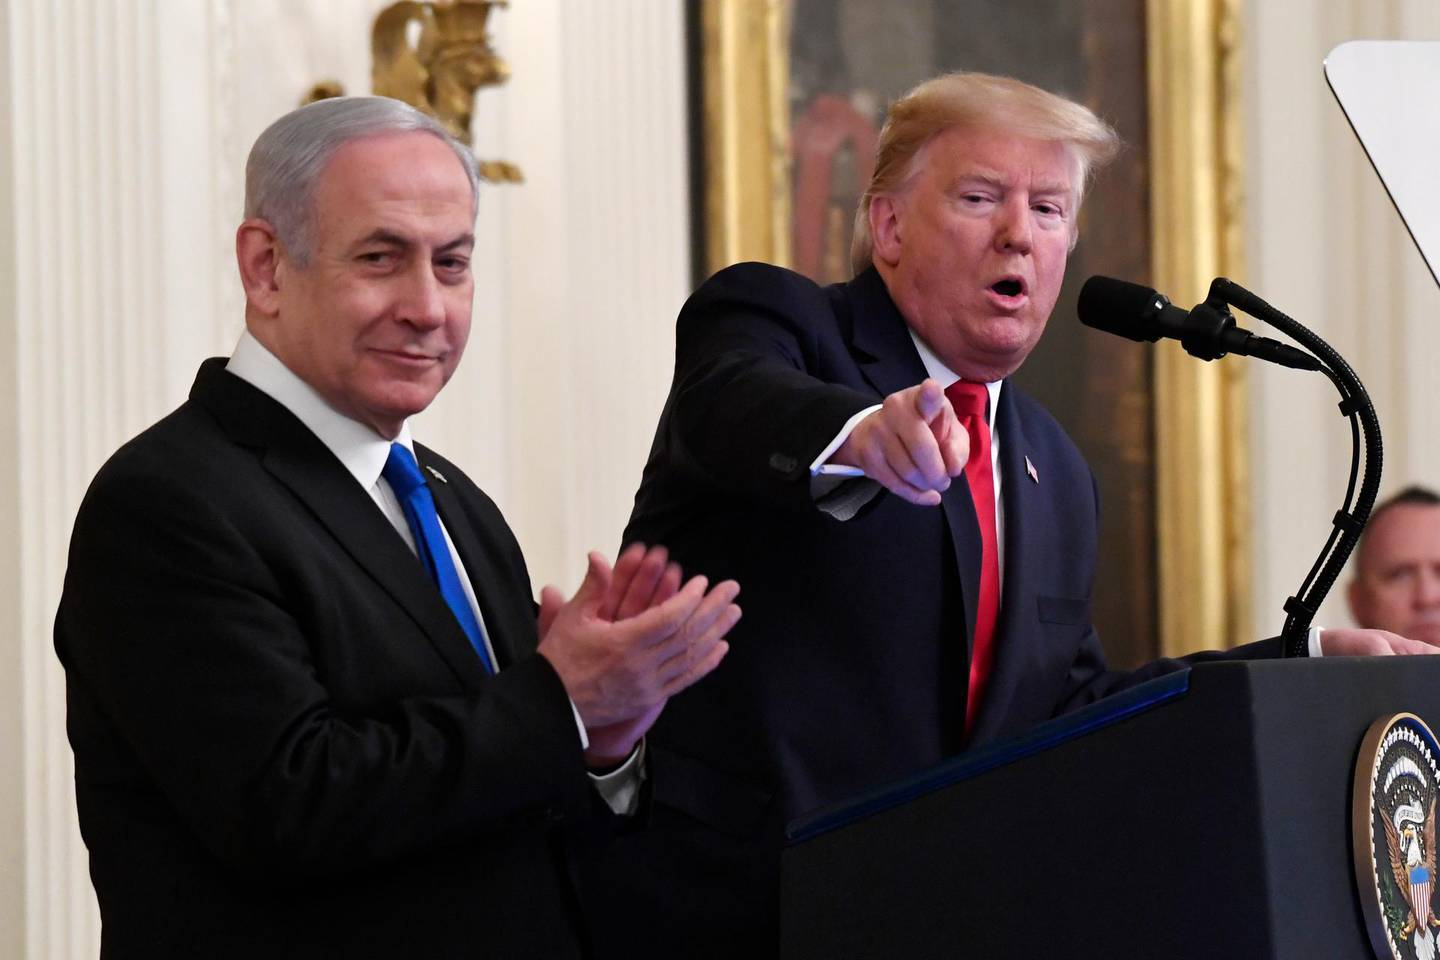 FILE - In this Jan. 28, 2020, file photo, President Donald Trump speaks during an event with Israeli Prime Minister Benjamin Netanyahu in the East Room of the White House in Washington. (AP Photo/Susan Walsh, File)